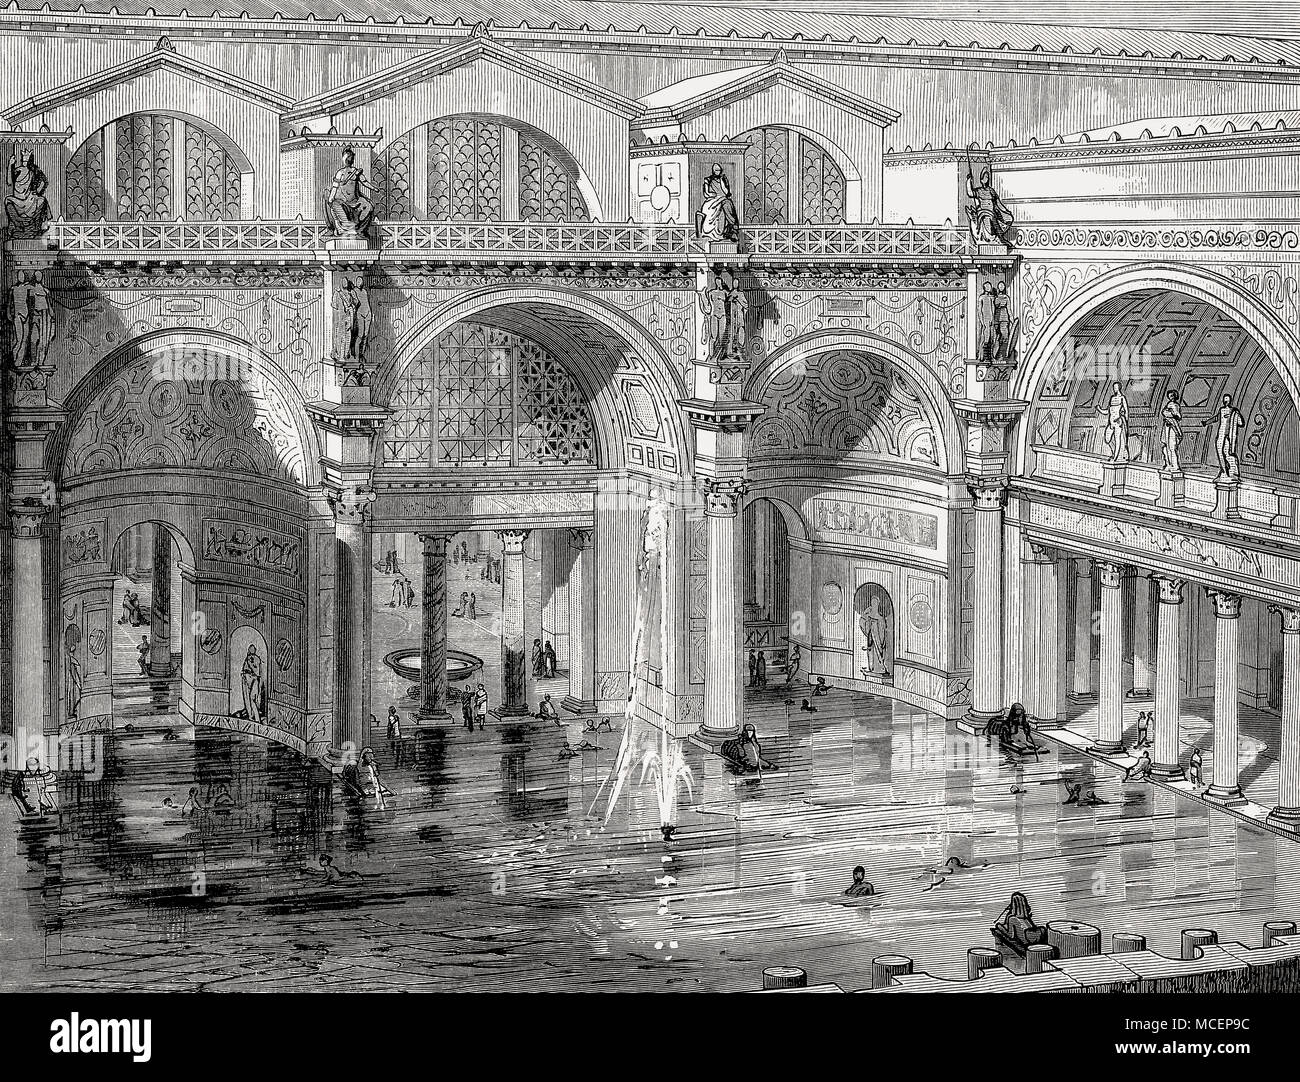 The Baths of Caracalla in ancient Rome, Italy ... Baths Of Caracalla Reconstruction